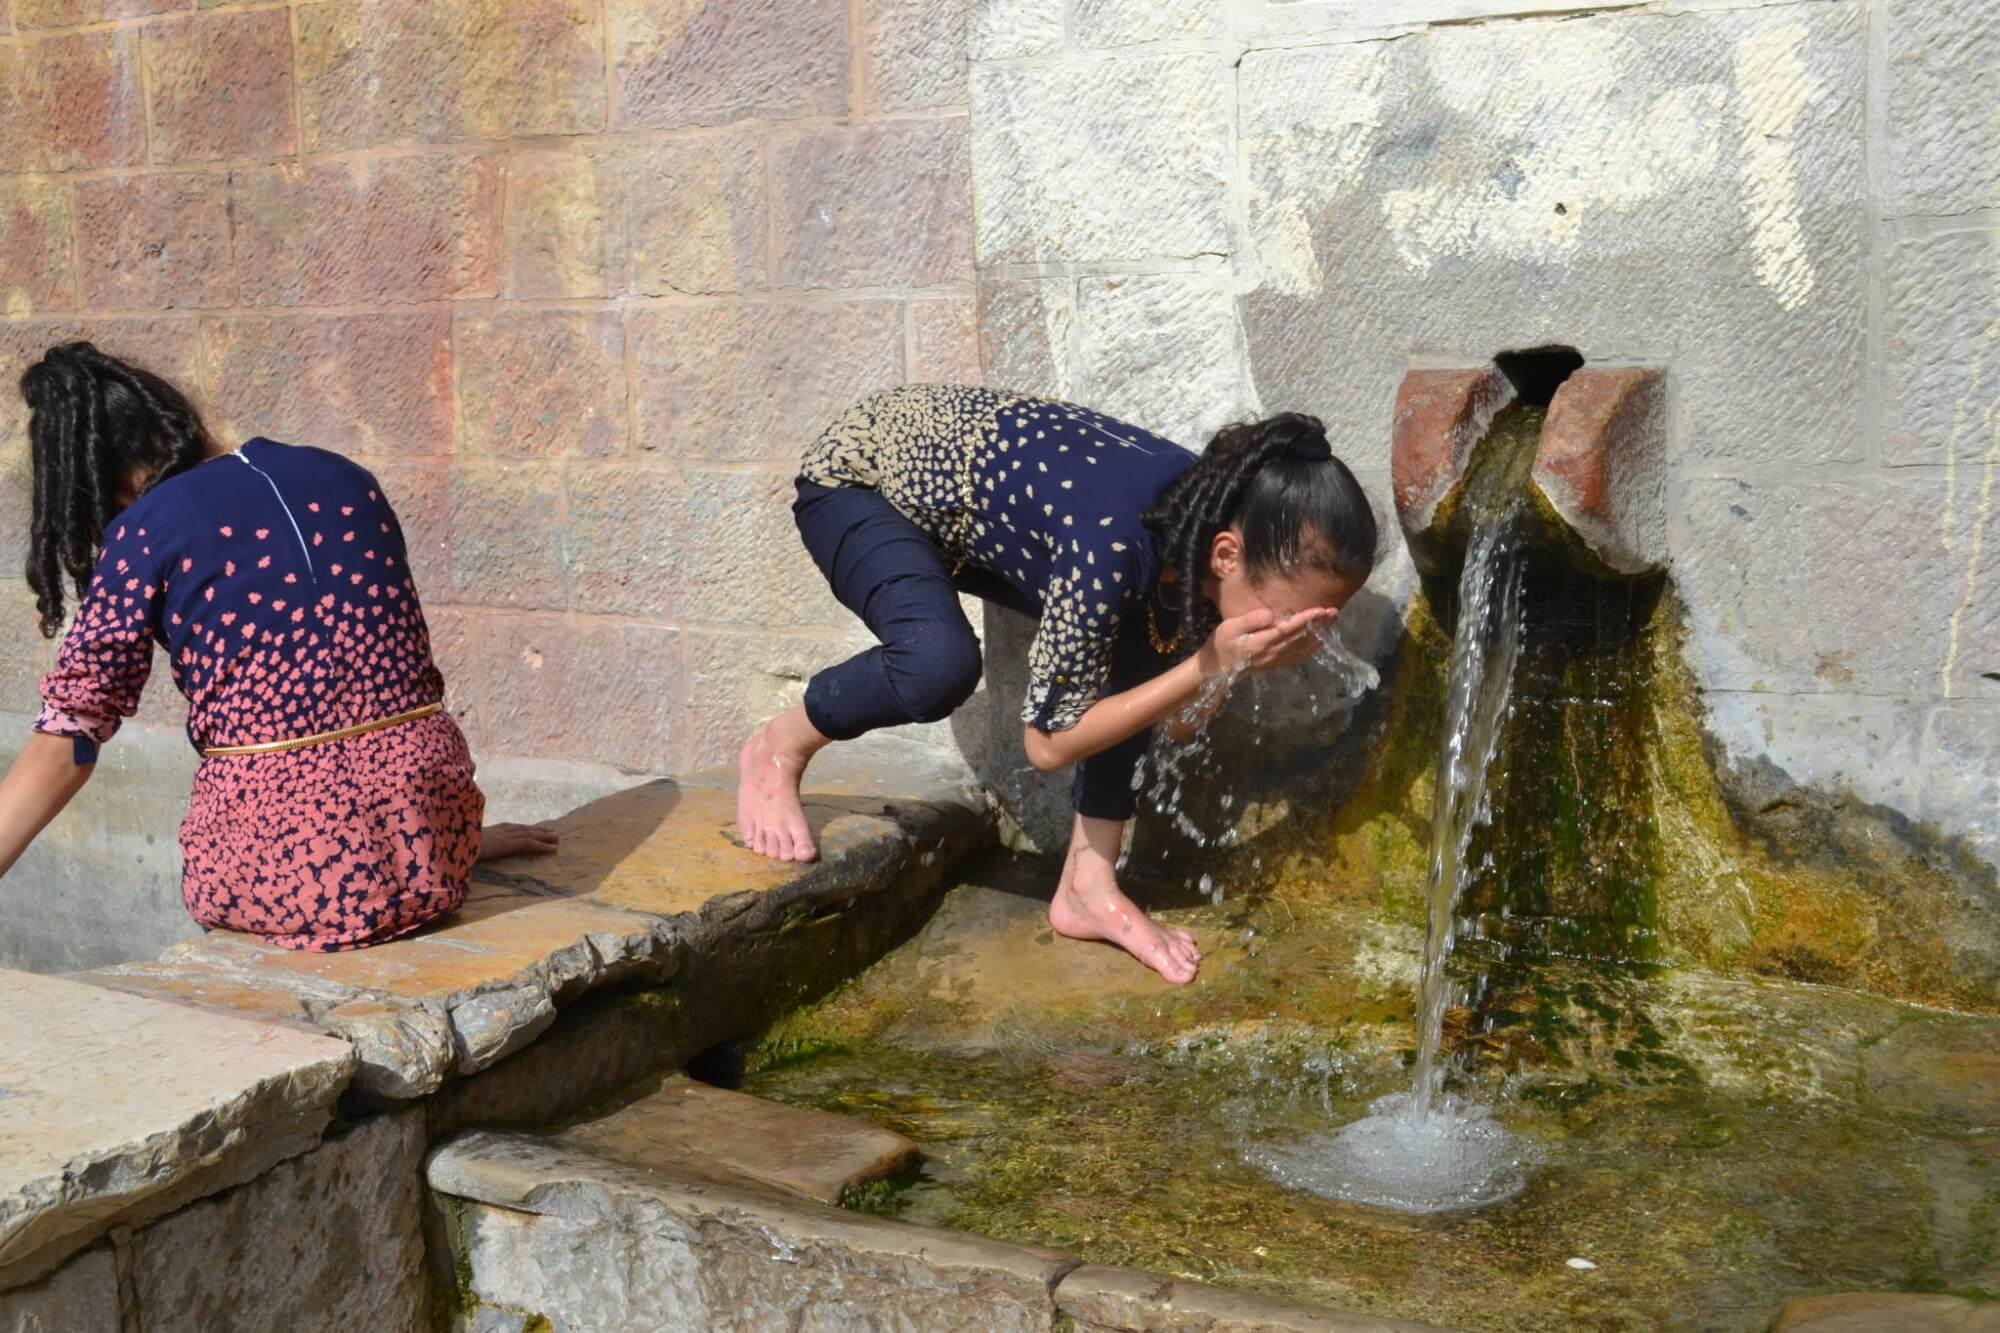 Palestinian girl freshens up at natural spring, Battir village, Bethlehem district, Palestine (Photo: David Kattenburg)